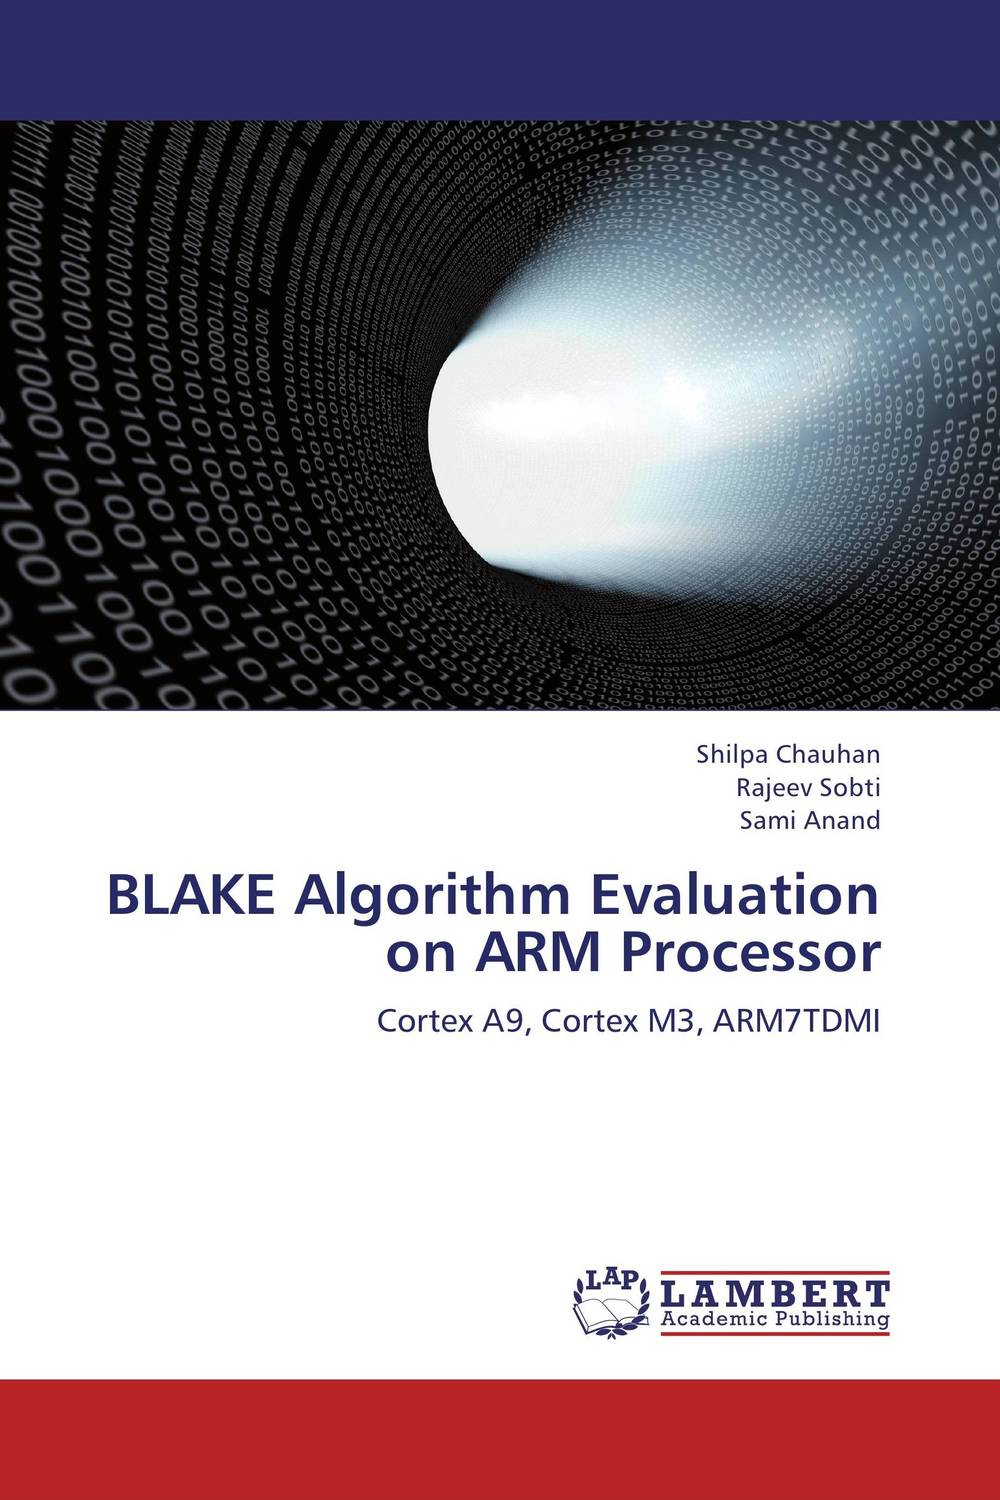 BLAKE Algorithm Evaluation on ARM Processor the role of evaluation as a mechanism for advancing principal practice